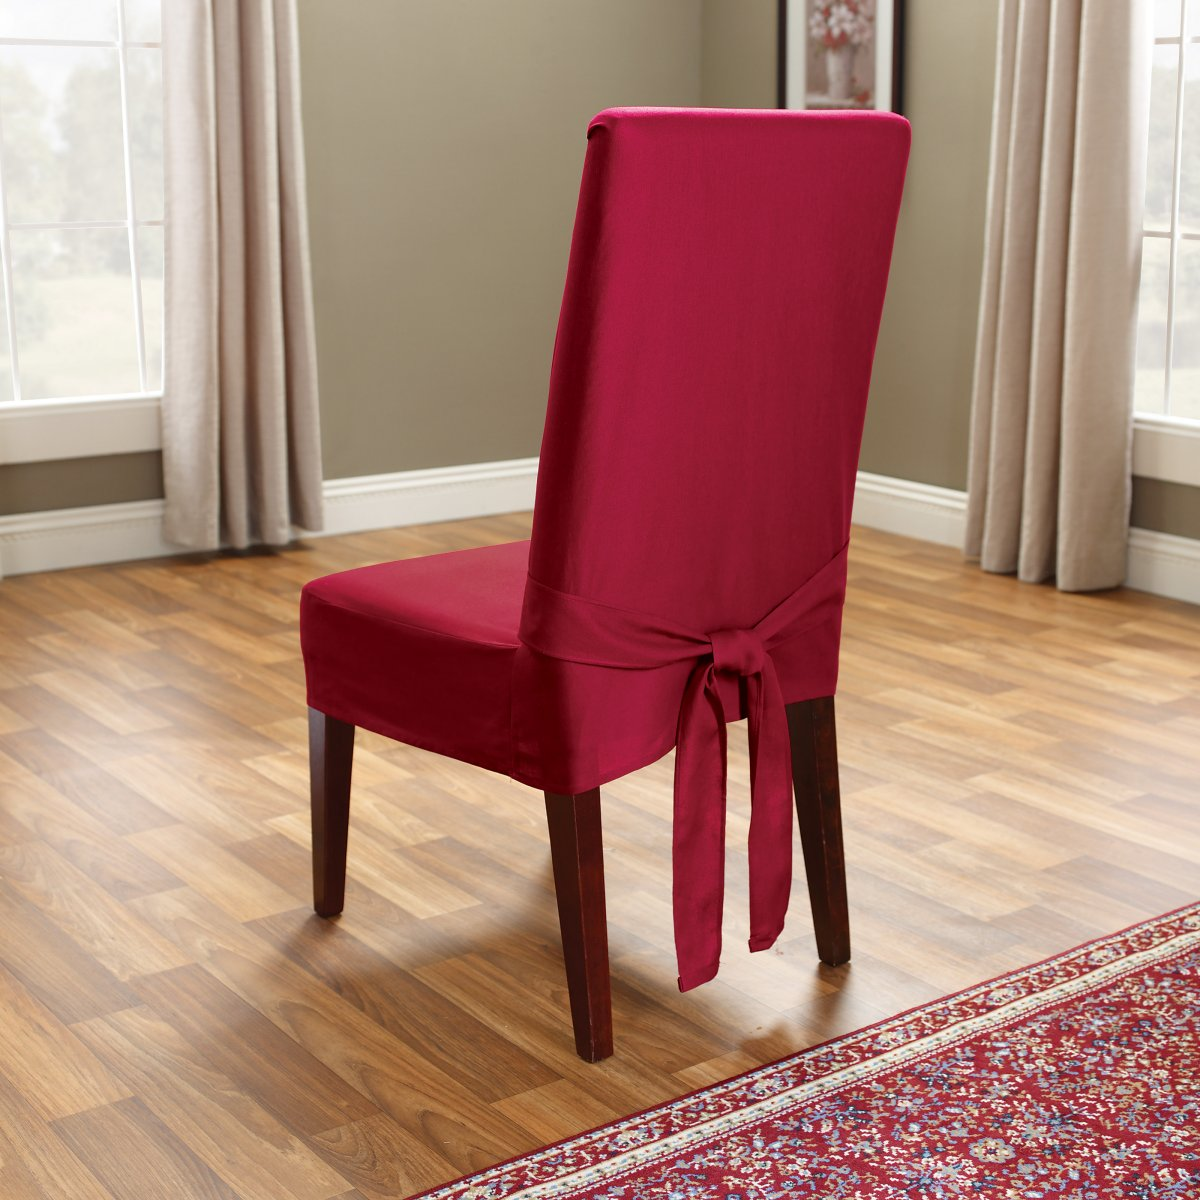 dining chair cover photo - 1